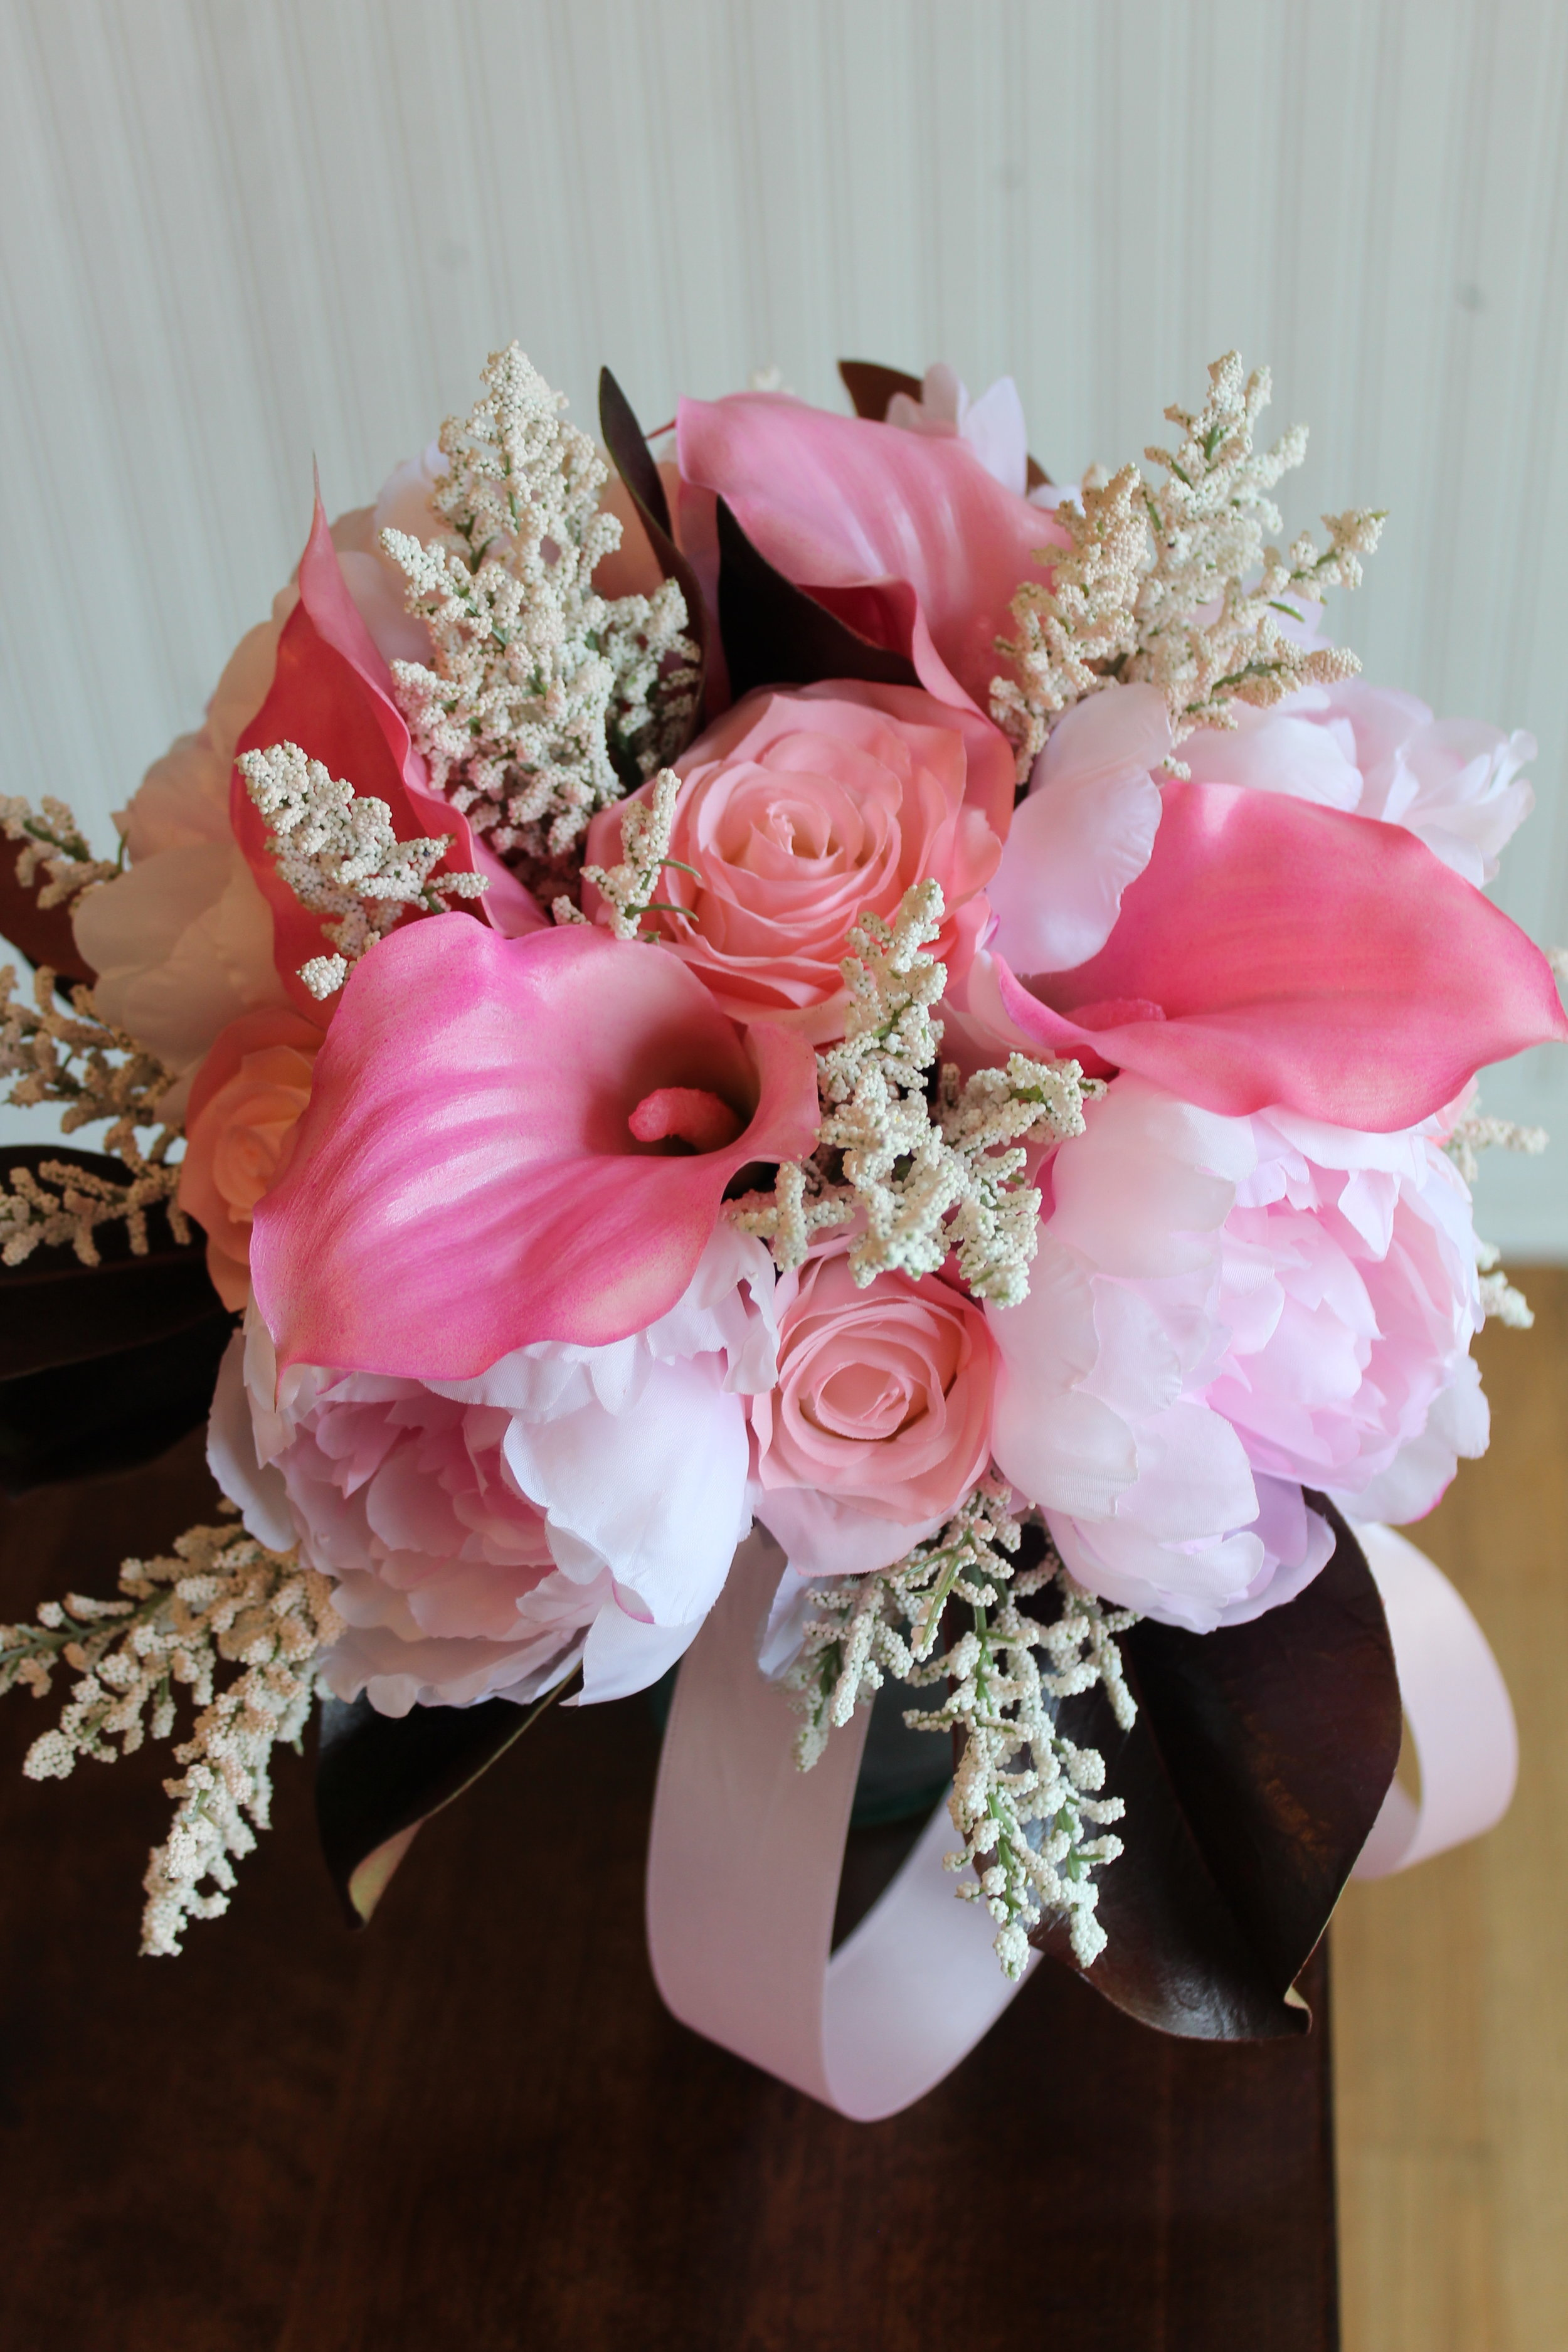 silk-bridal-bouquet-wedding-flowers-recreation-pink-roses-lillies-heather-magnolia-handtied.jpg